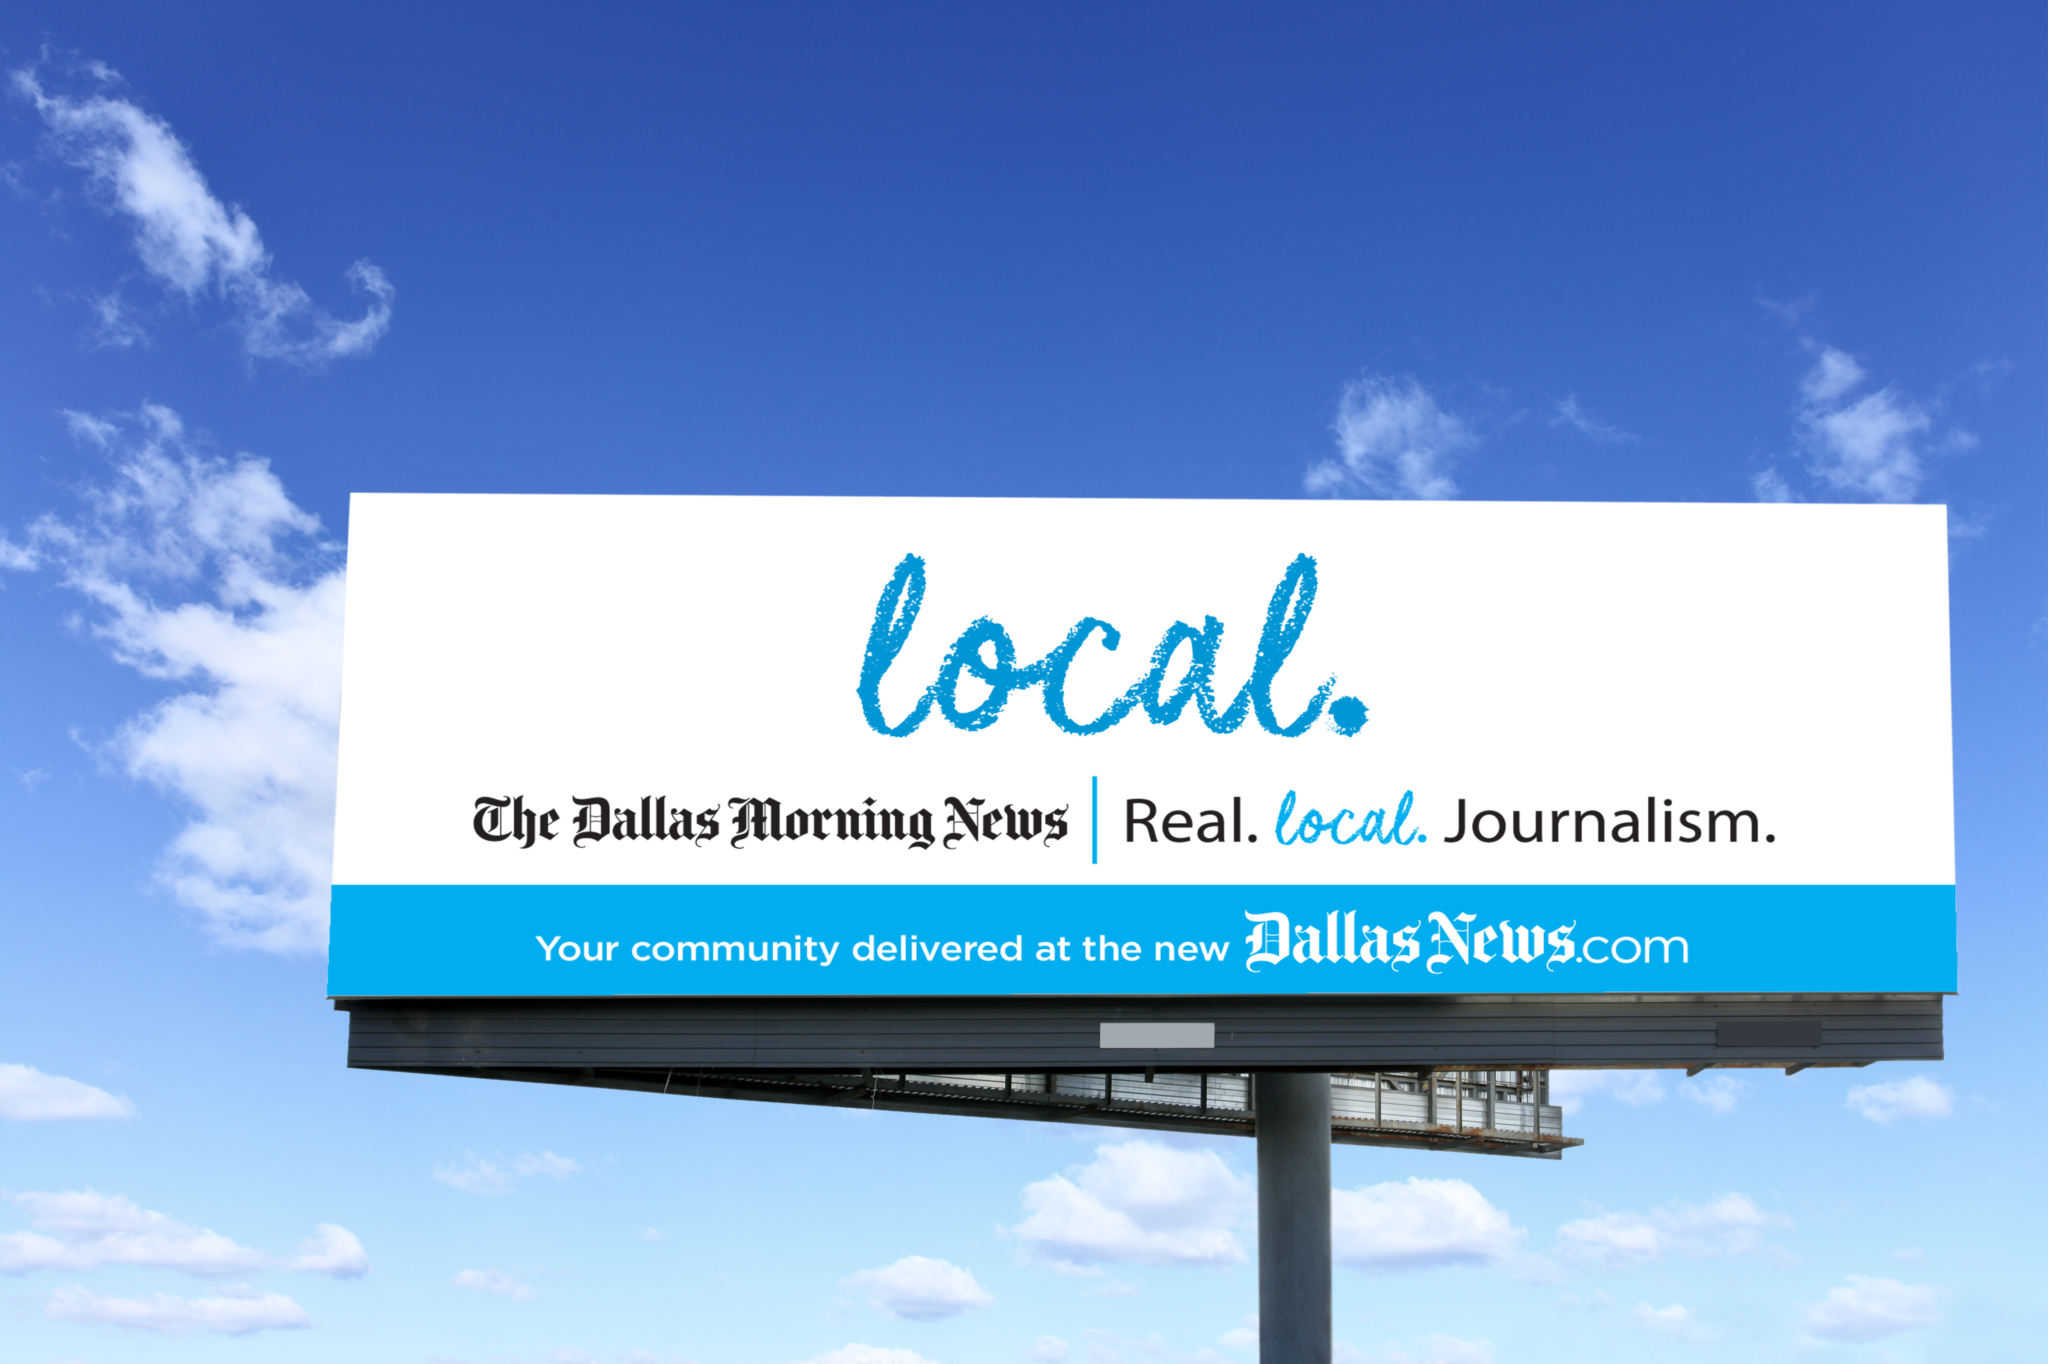 How The Dallas Morning News expanded its hyperlocal journalism through a web hub and newsletter initiative